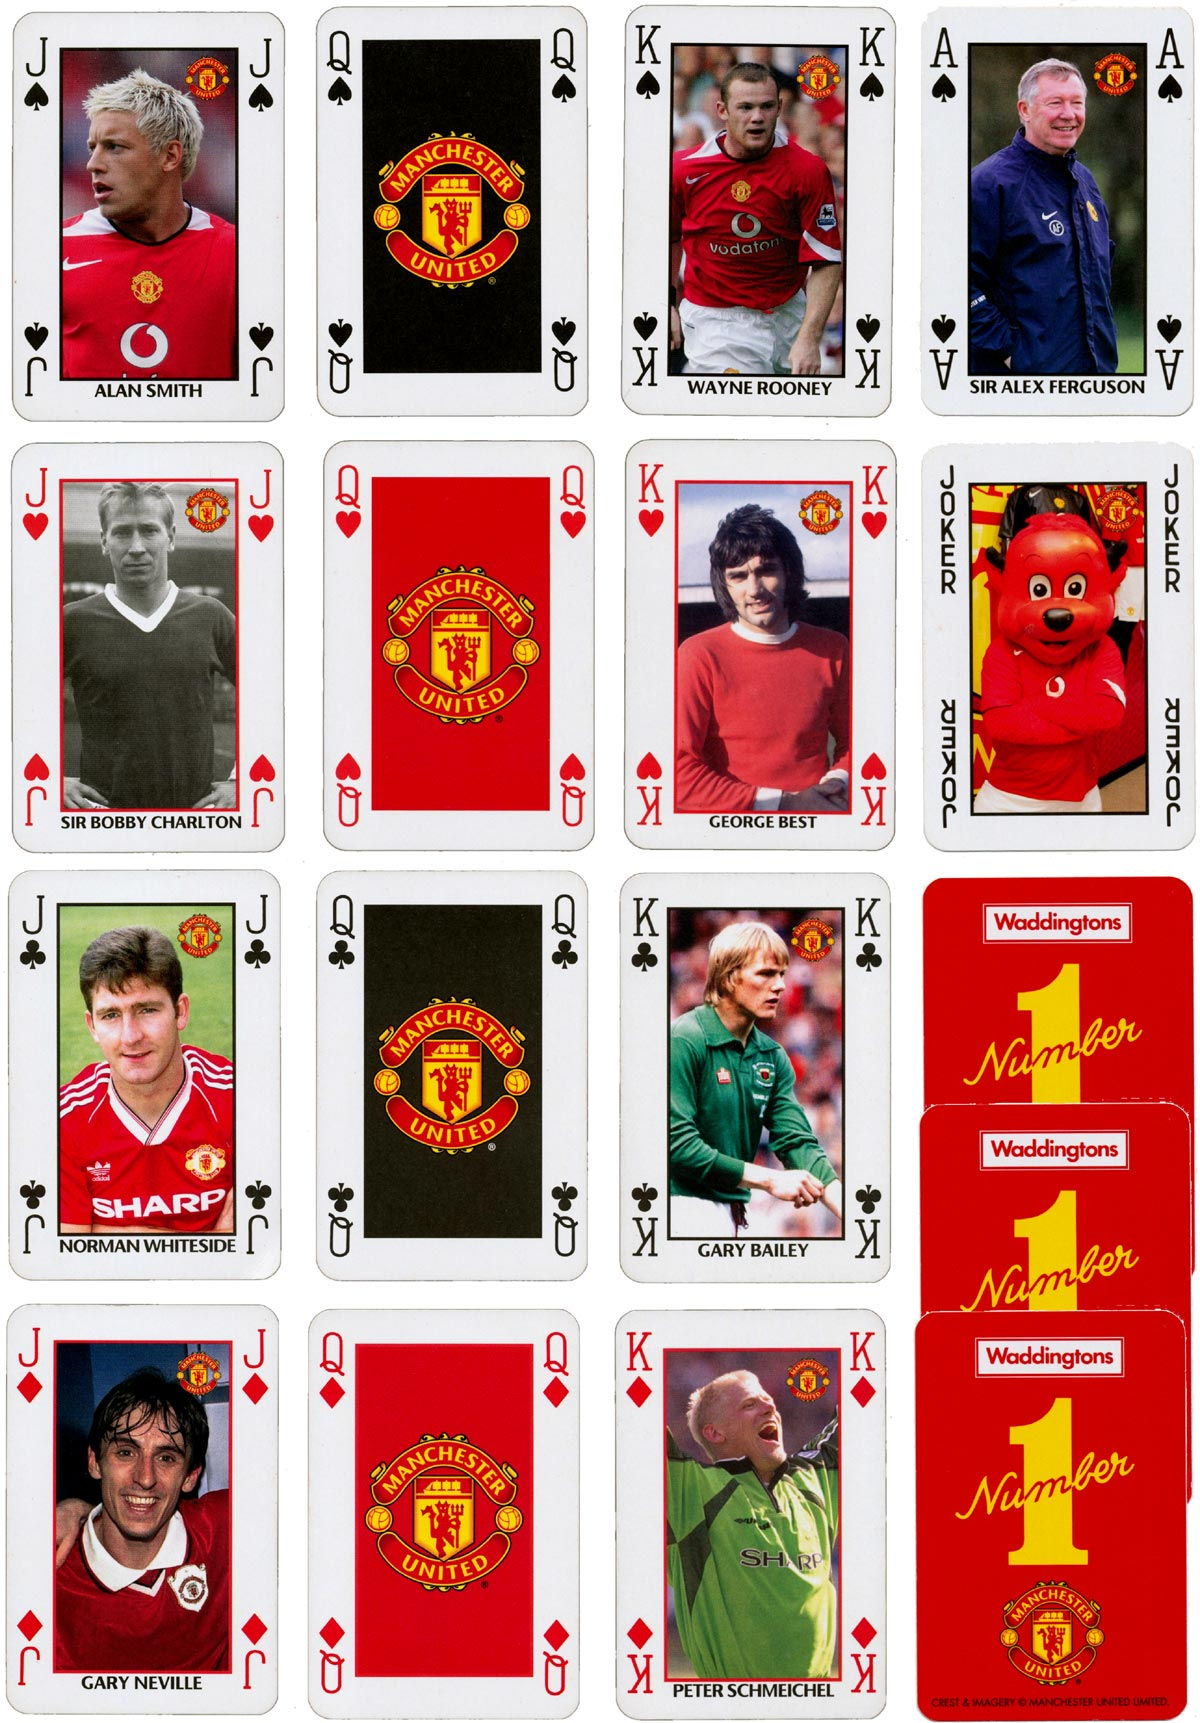 Manchester United by Waddingtons 'Number 1' published by Breadwinners in 2006